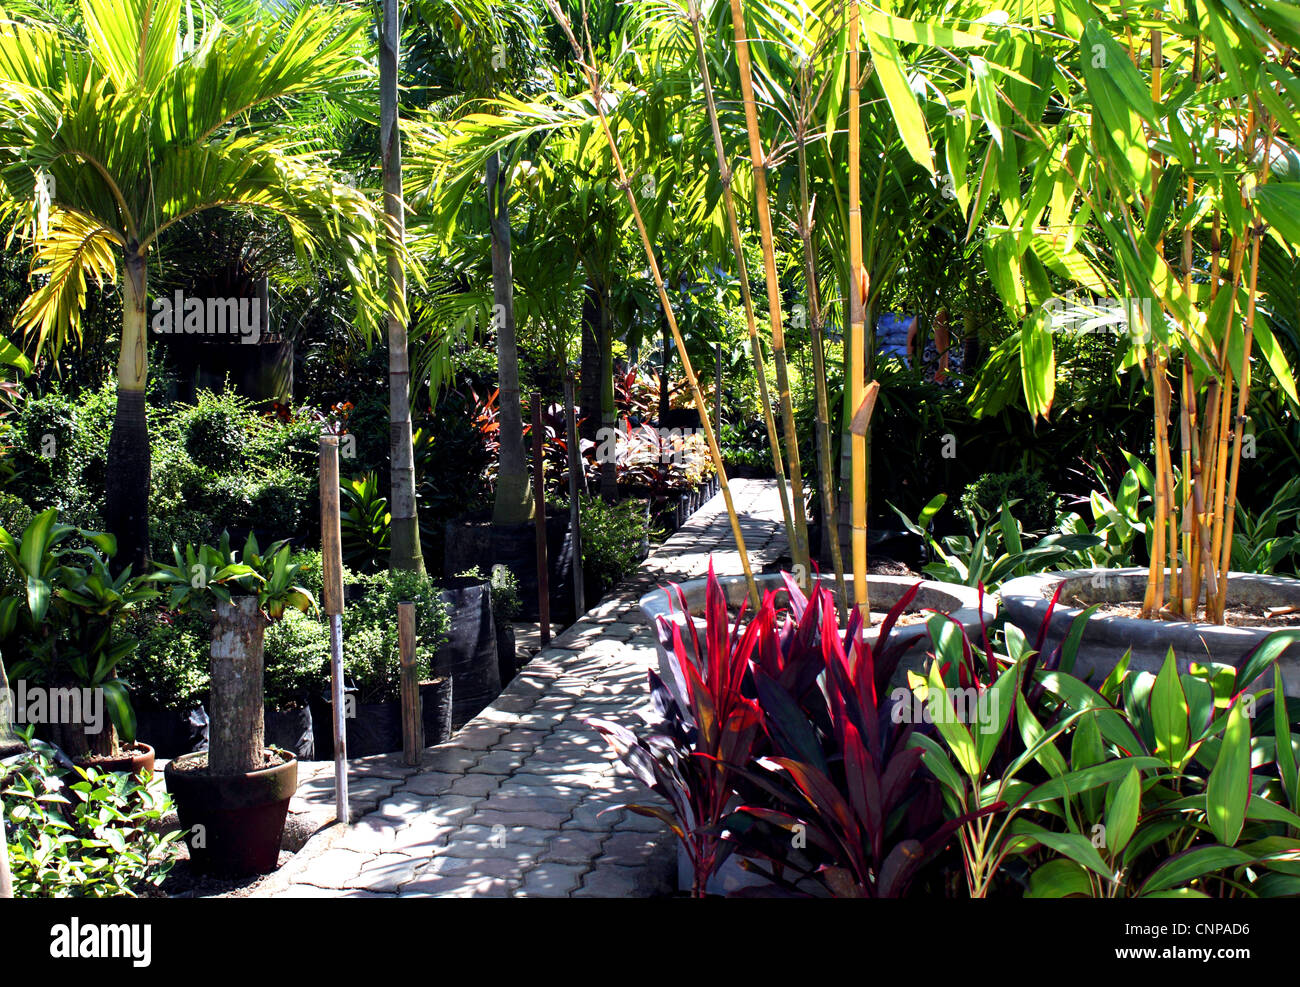 Private Botanical Garden and nursery with variety of tropical plants - Stock Image